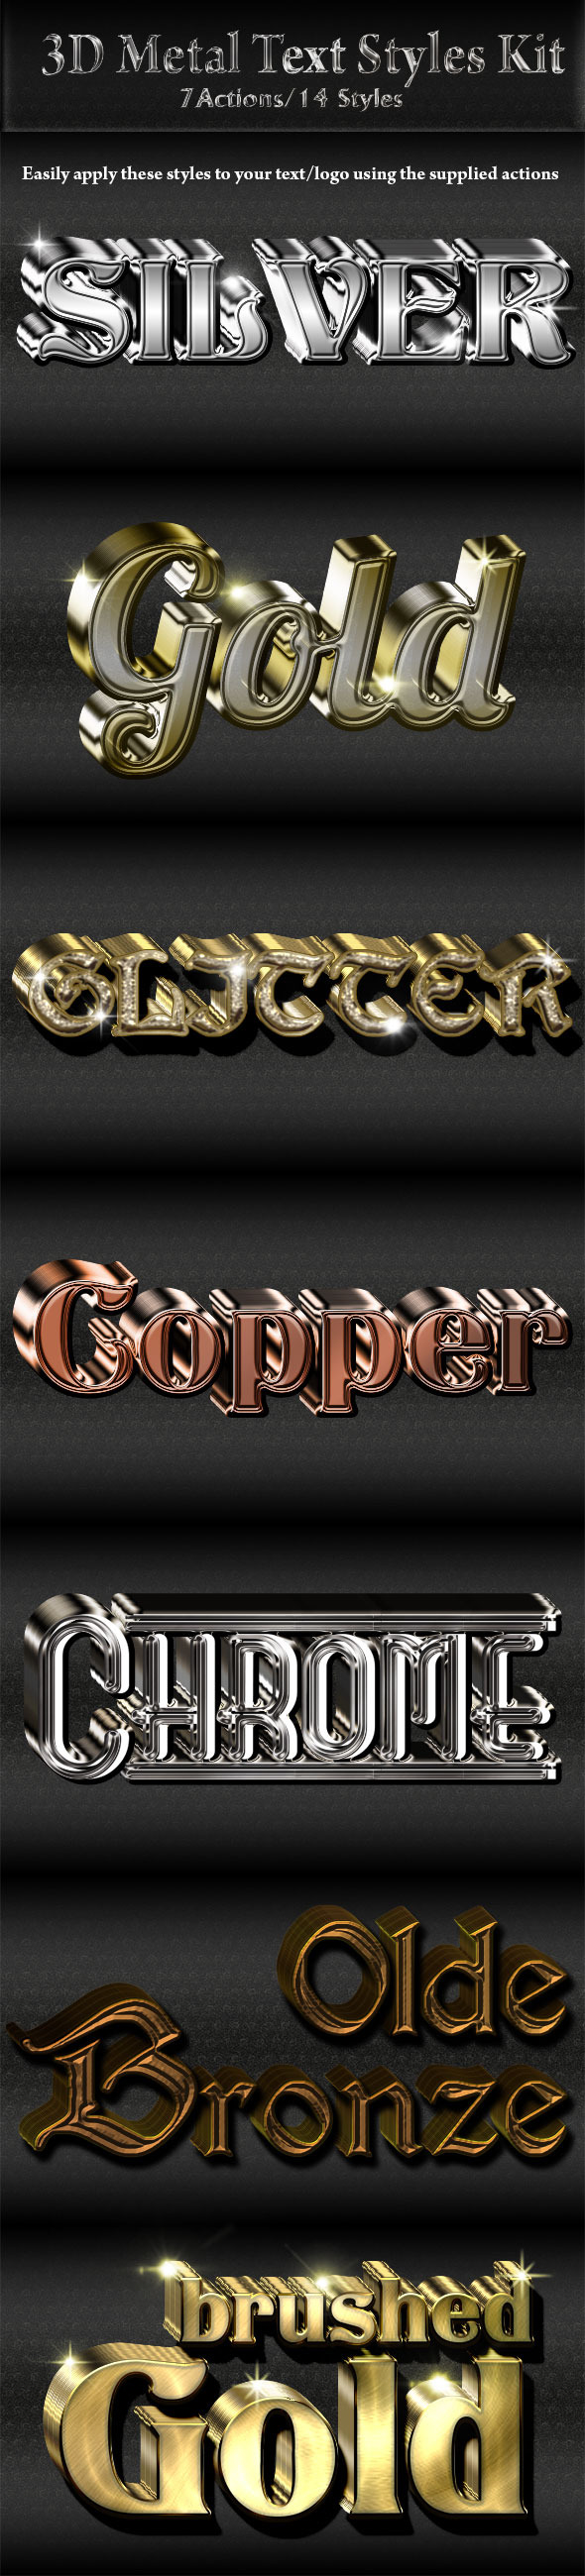 GraphicRiver 3D Metal Text Logo Styles Kit 9410770